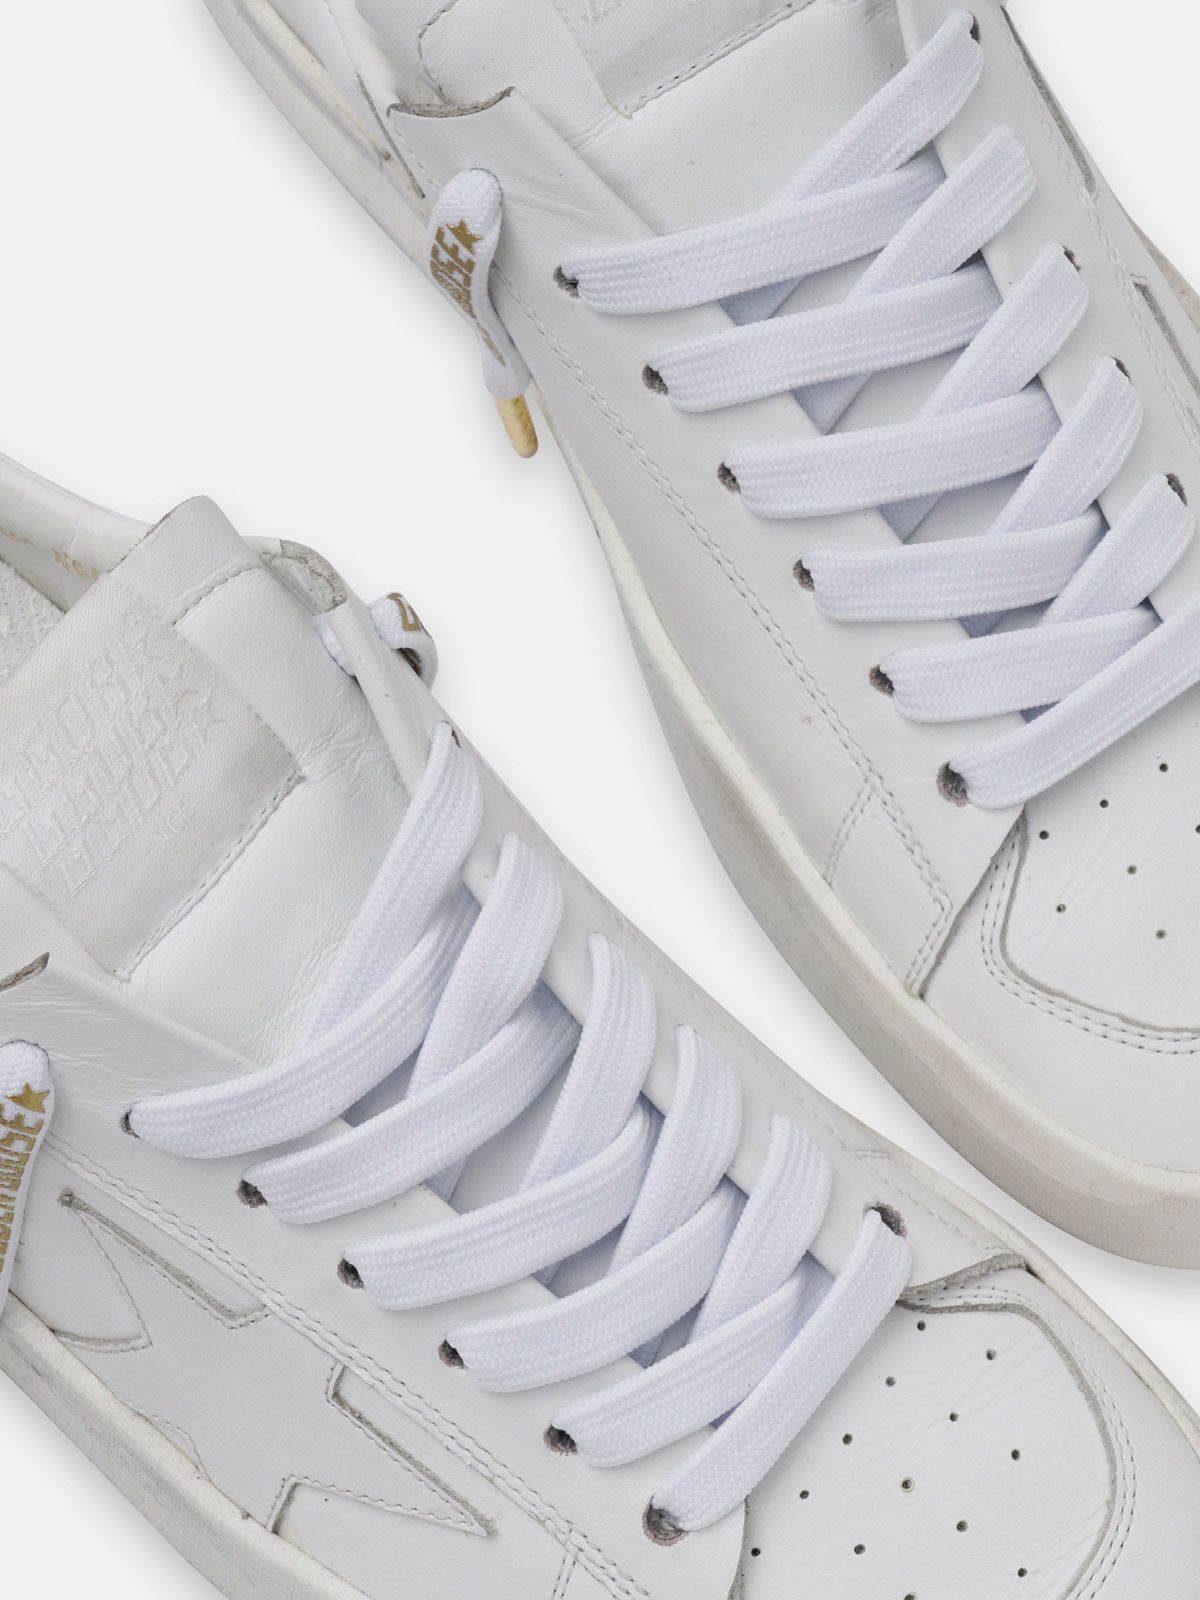 Golden Goose - Women's white laces with gold logo in